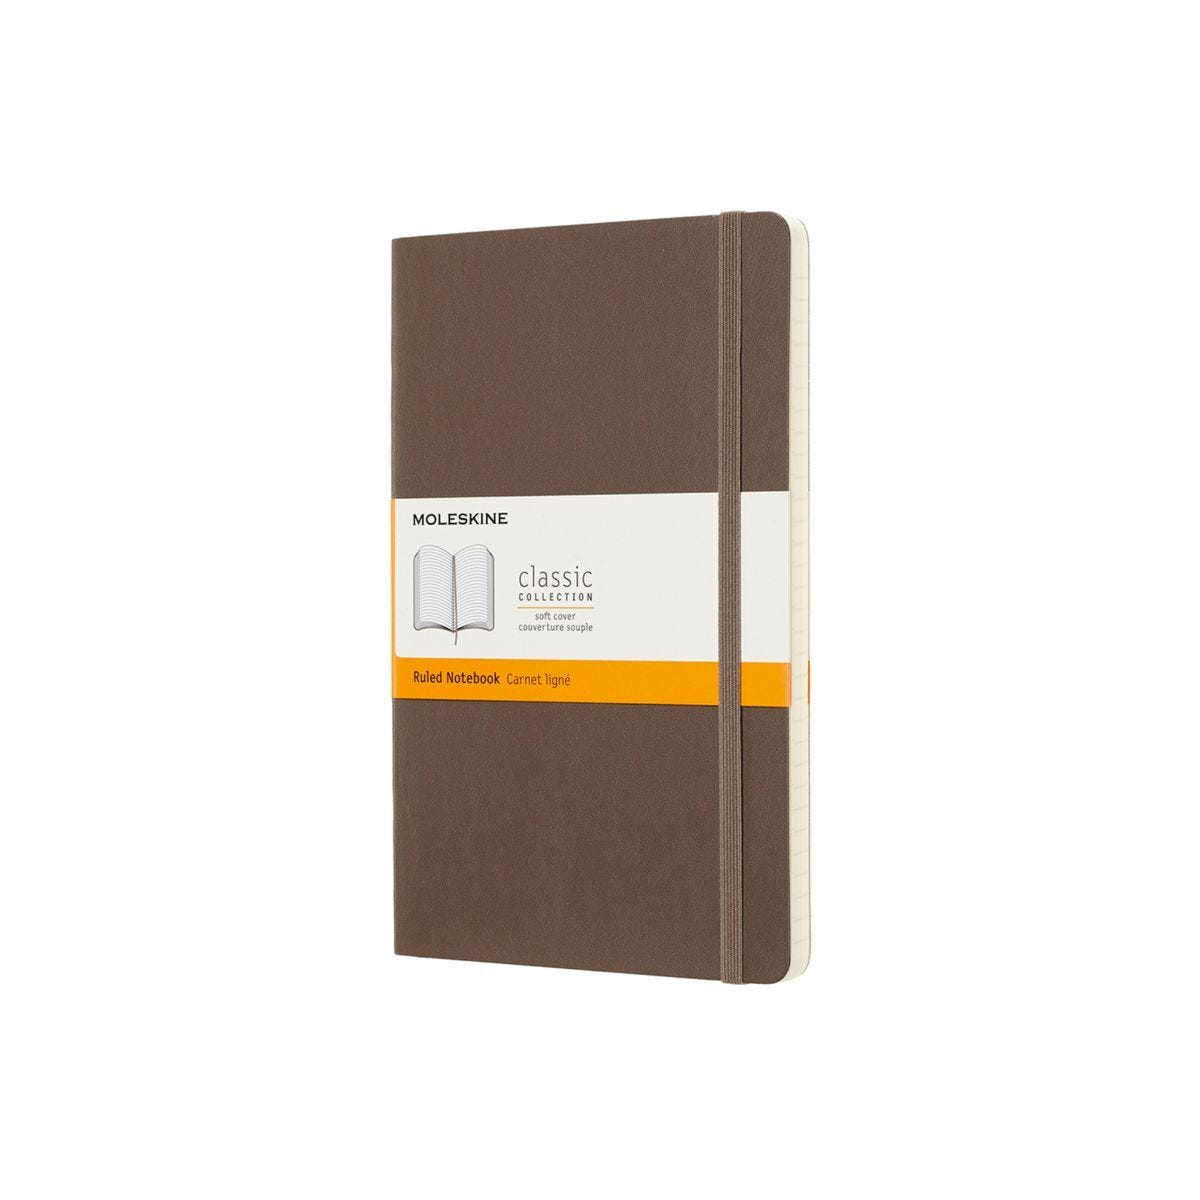 Moleskine Soft Cover Classic Notebook Large Ruled Brown